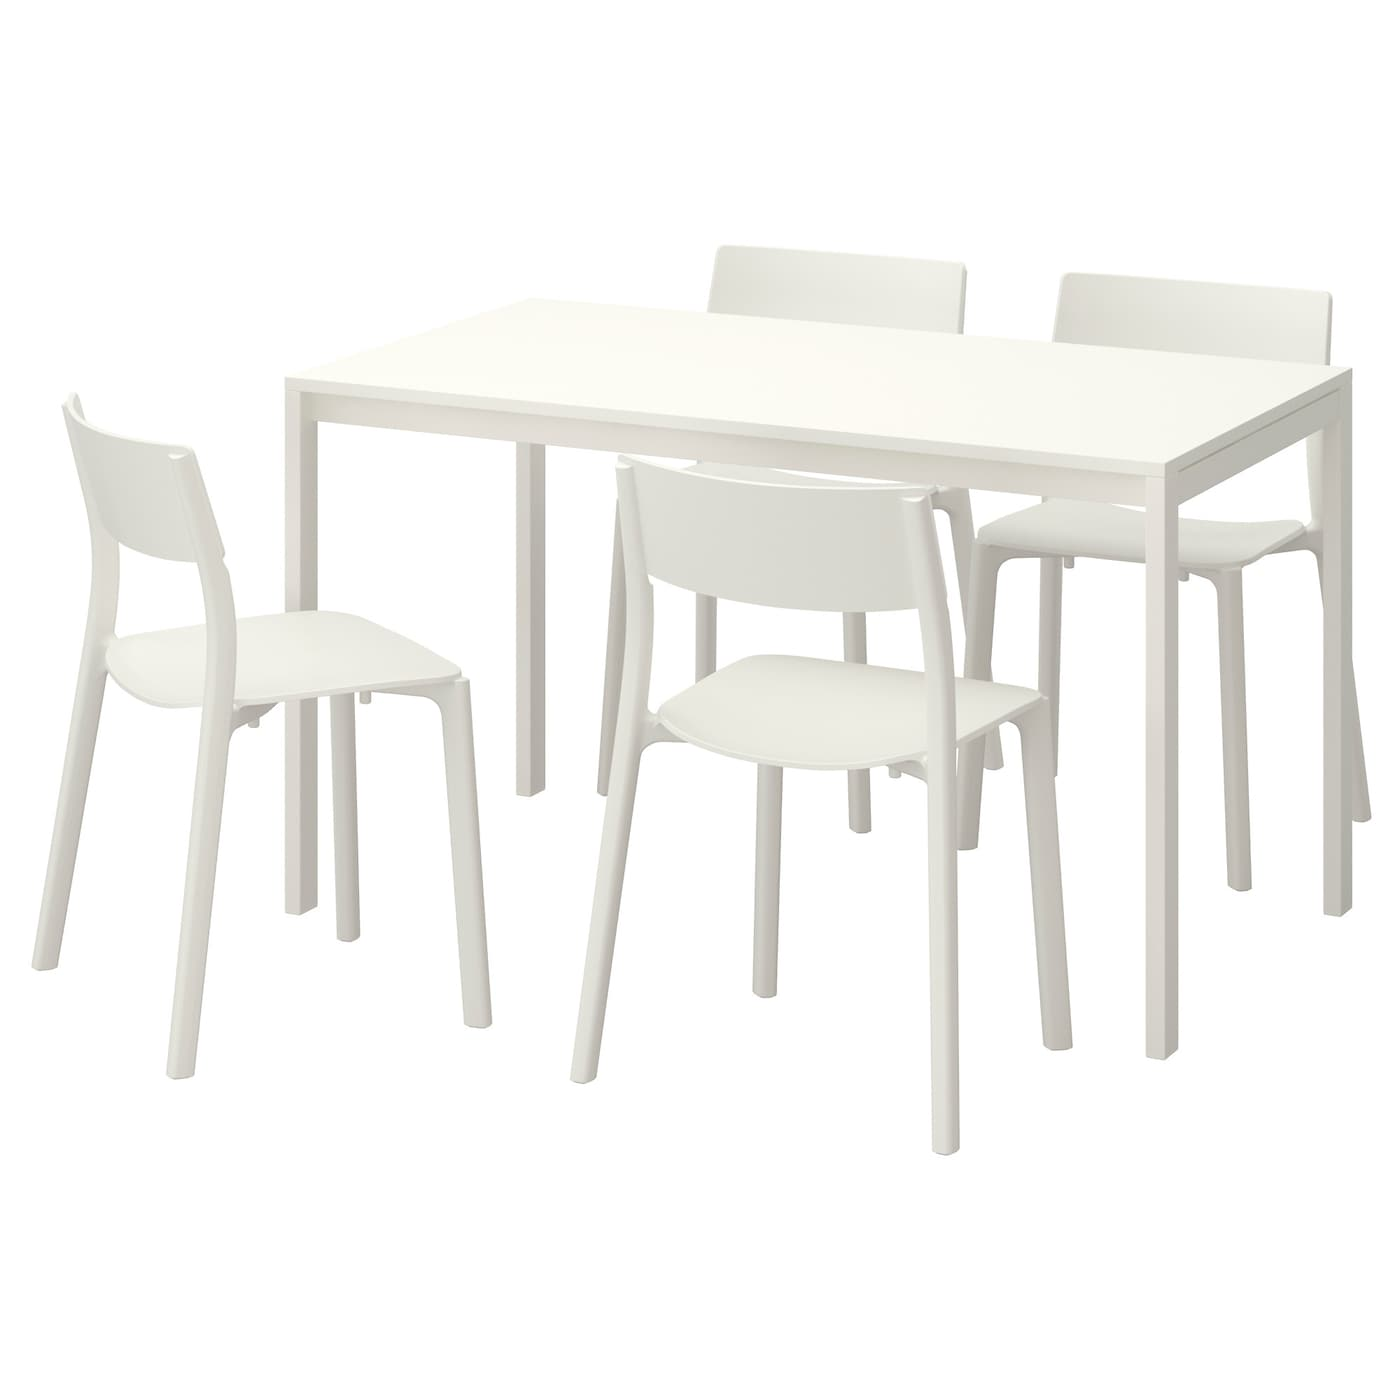 melltorp janinge table and 4 chairs white white 125 cm ikea. Black Bedroom Furniture Sets. Home Design Ideas